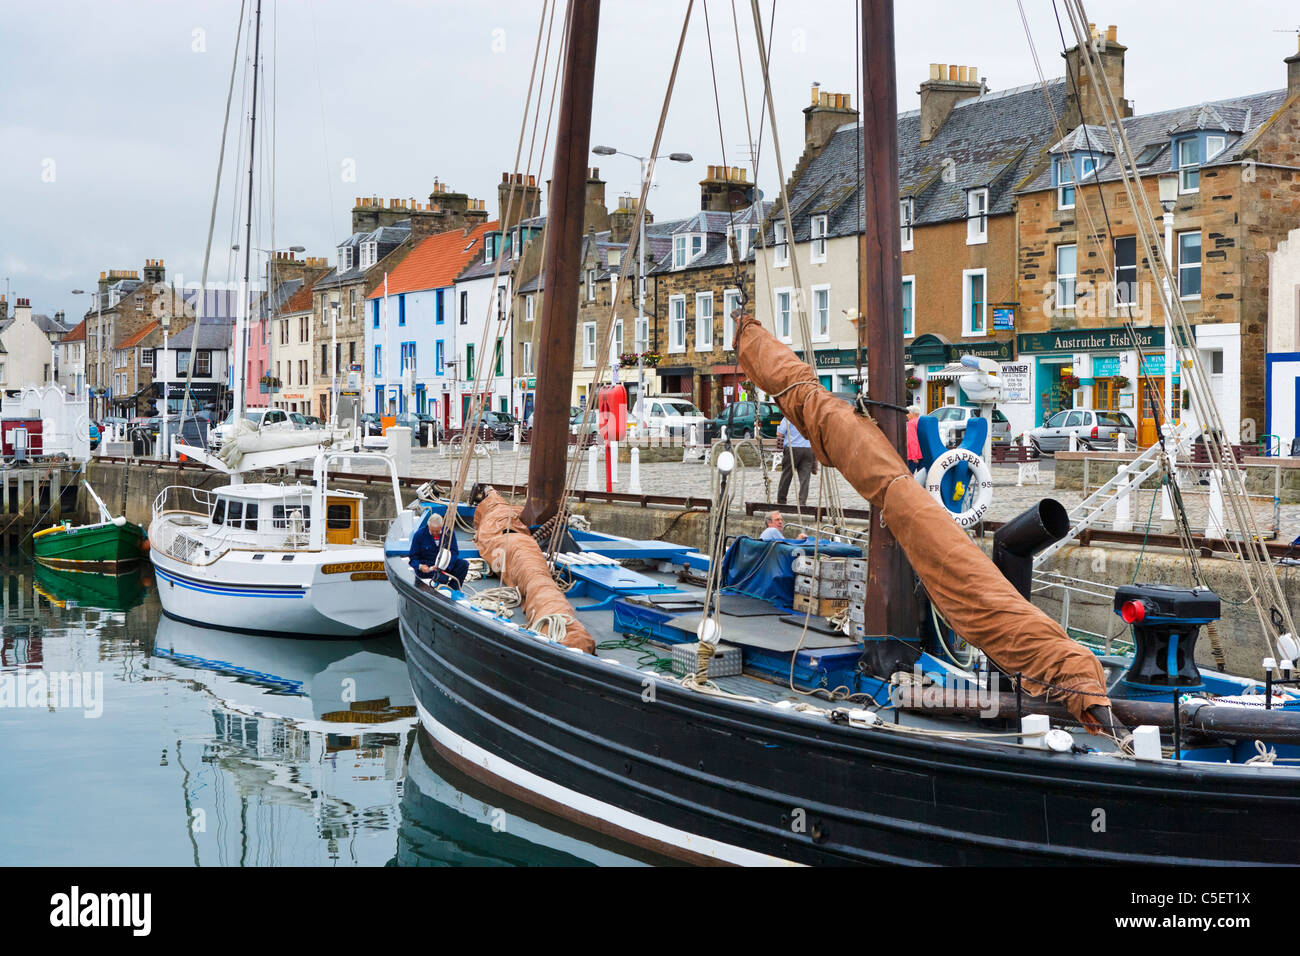 The waterfront and historic Fife herring drifter Reaper in Anstruther harbour, East Neuk, Fife, Scotland, UK - Stock Image